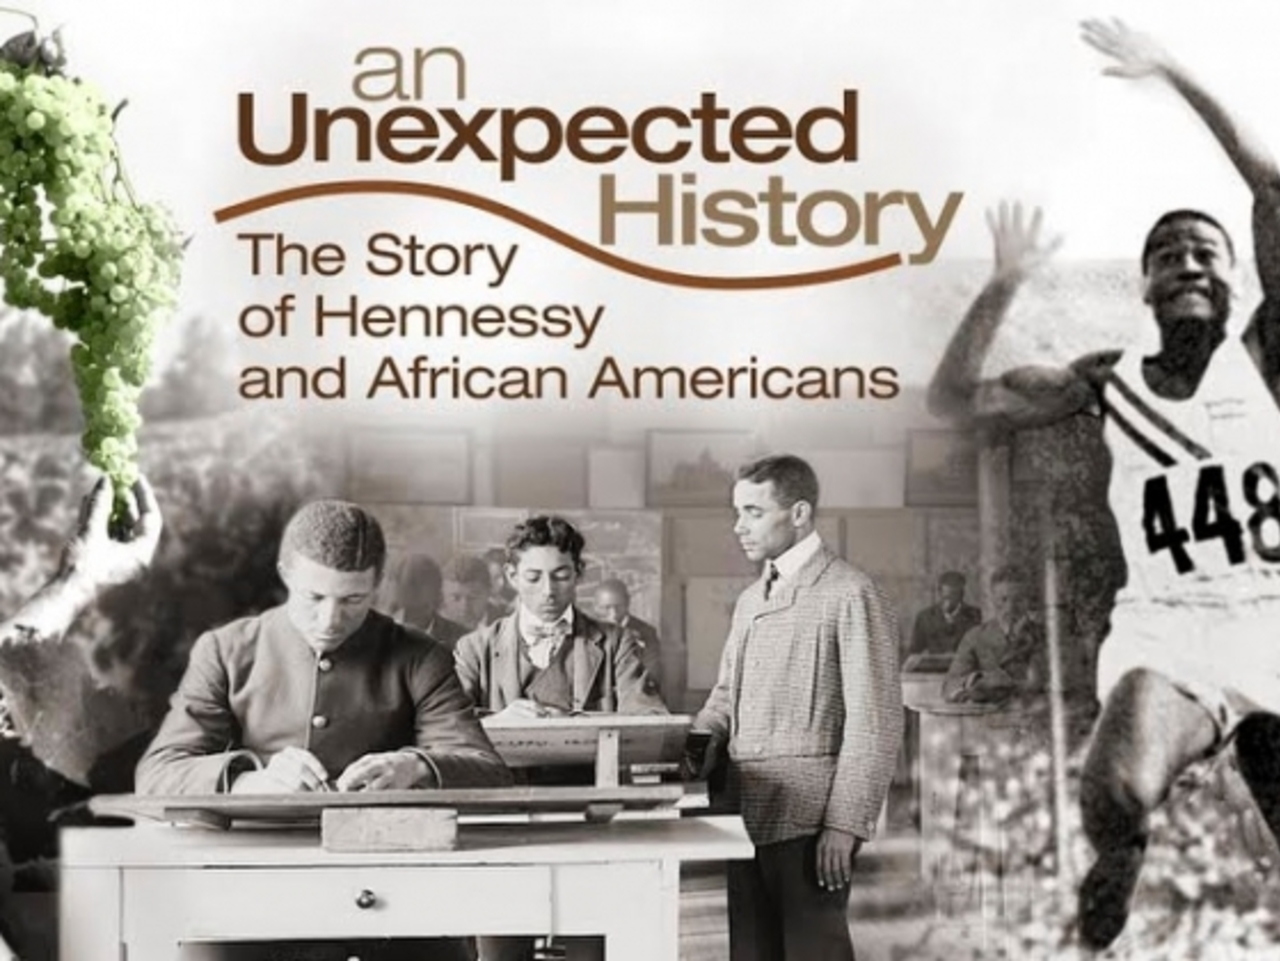 AN UNEXPECTED HISTORY: THE STORY OF HENNESSY AND AFRICAN AMERICANS: Friday, June 12, 6:15 p.m., AMC Empire 25